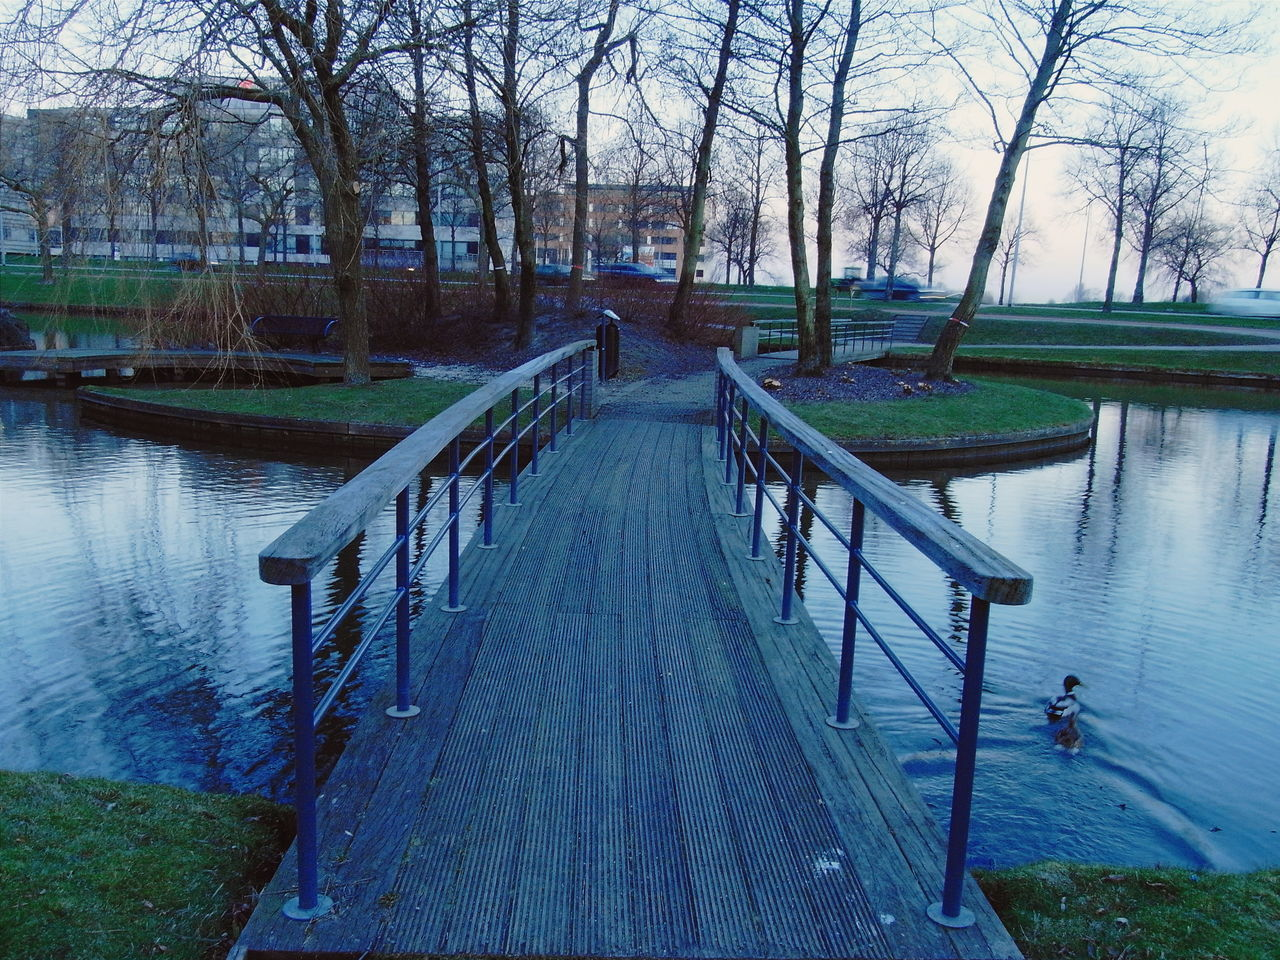 Photo taken near Radisson Blu Hotel in Schiphol-rijk Amsterdam Your Amsterdam Netherlands Europe Wood Blue Travel Photography Original Experiences Water The Way Forward Footbridge Tranquility Diminishing Perspective Bare Tree Tranquil Scene Outdoors Rippled Beauty In Nature Walkway Idyllic Vanishing Point Duck Horizontal Ricoh